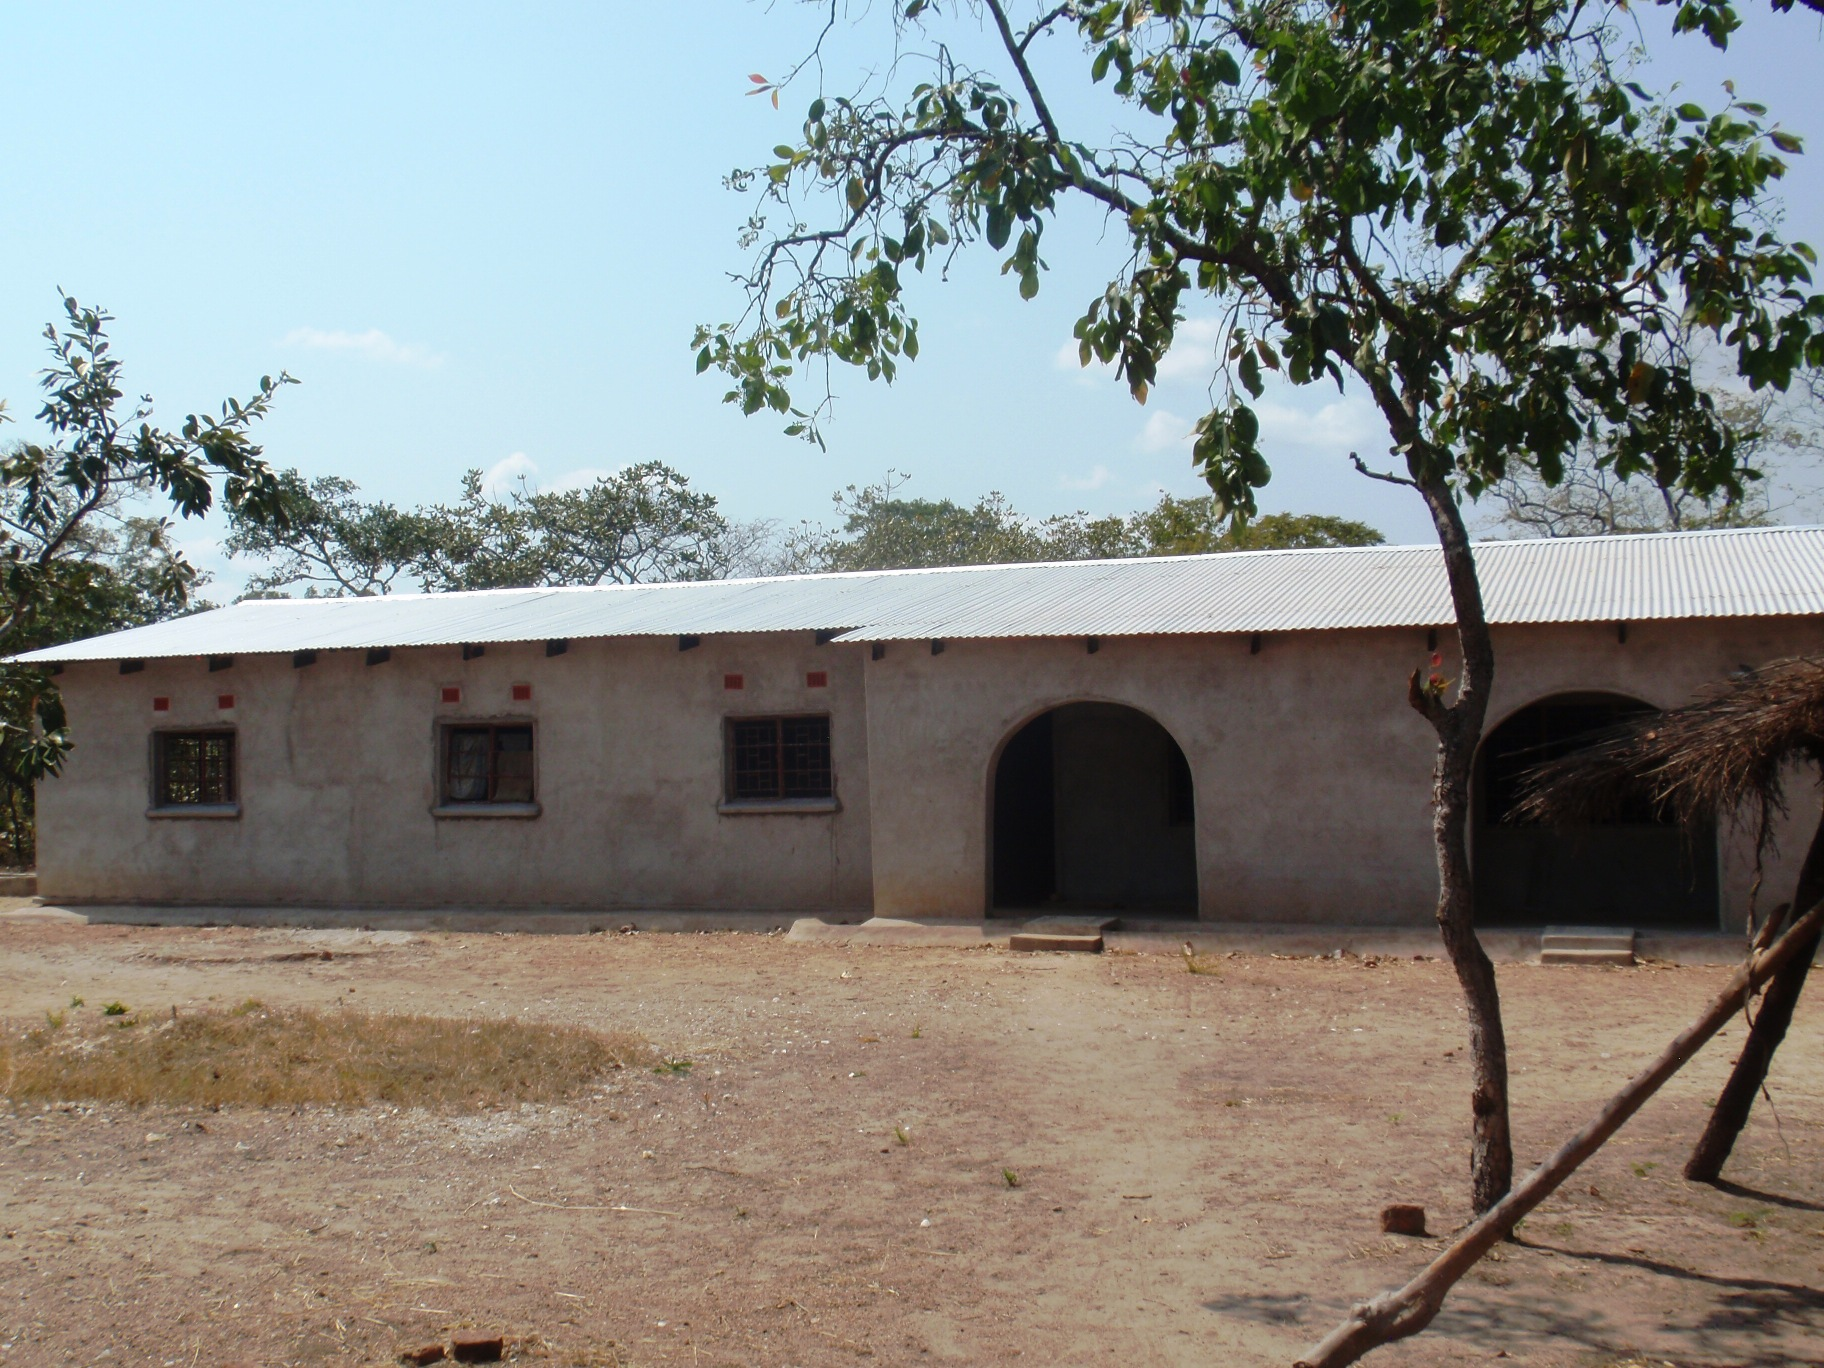 Chasefu Principal's House, where I will live after completing my MTh dissertation, rural eastern Zambia.